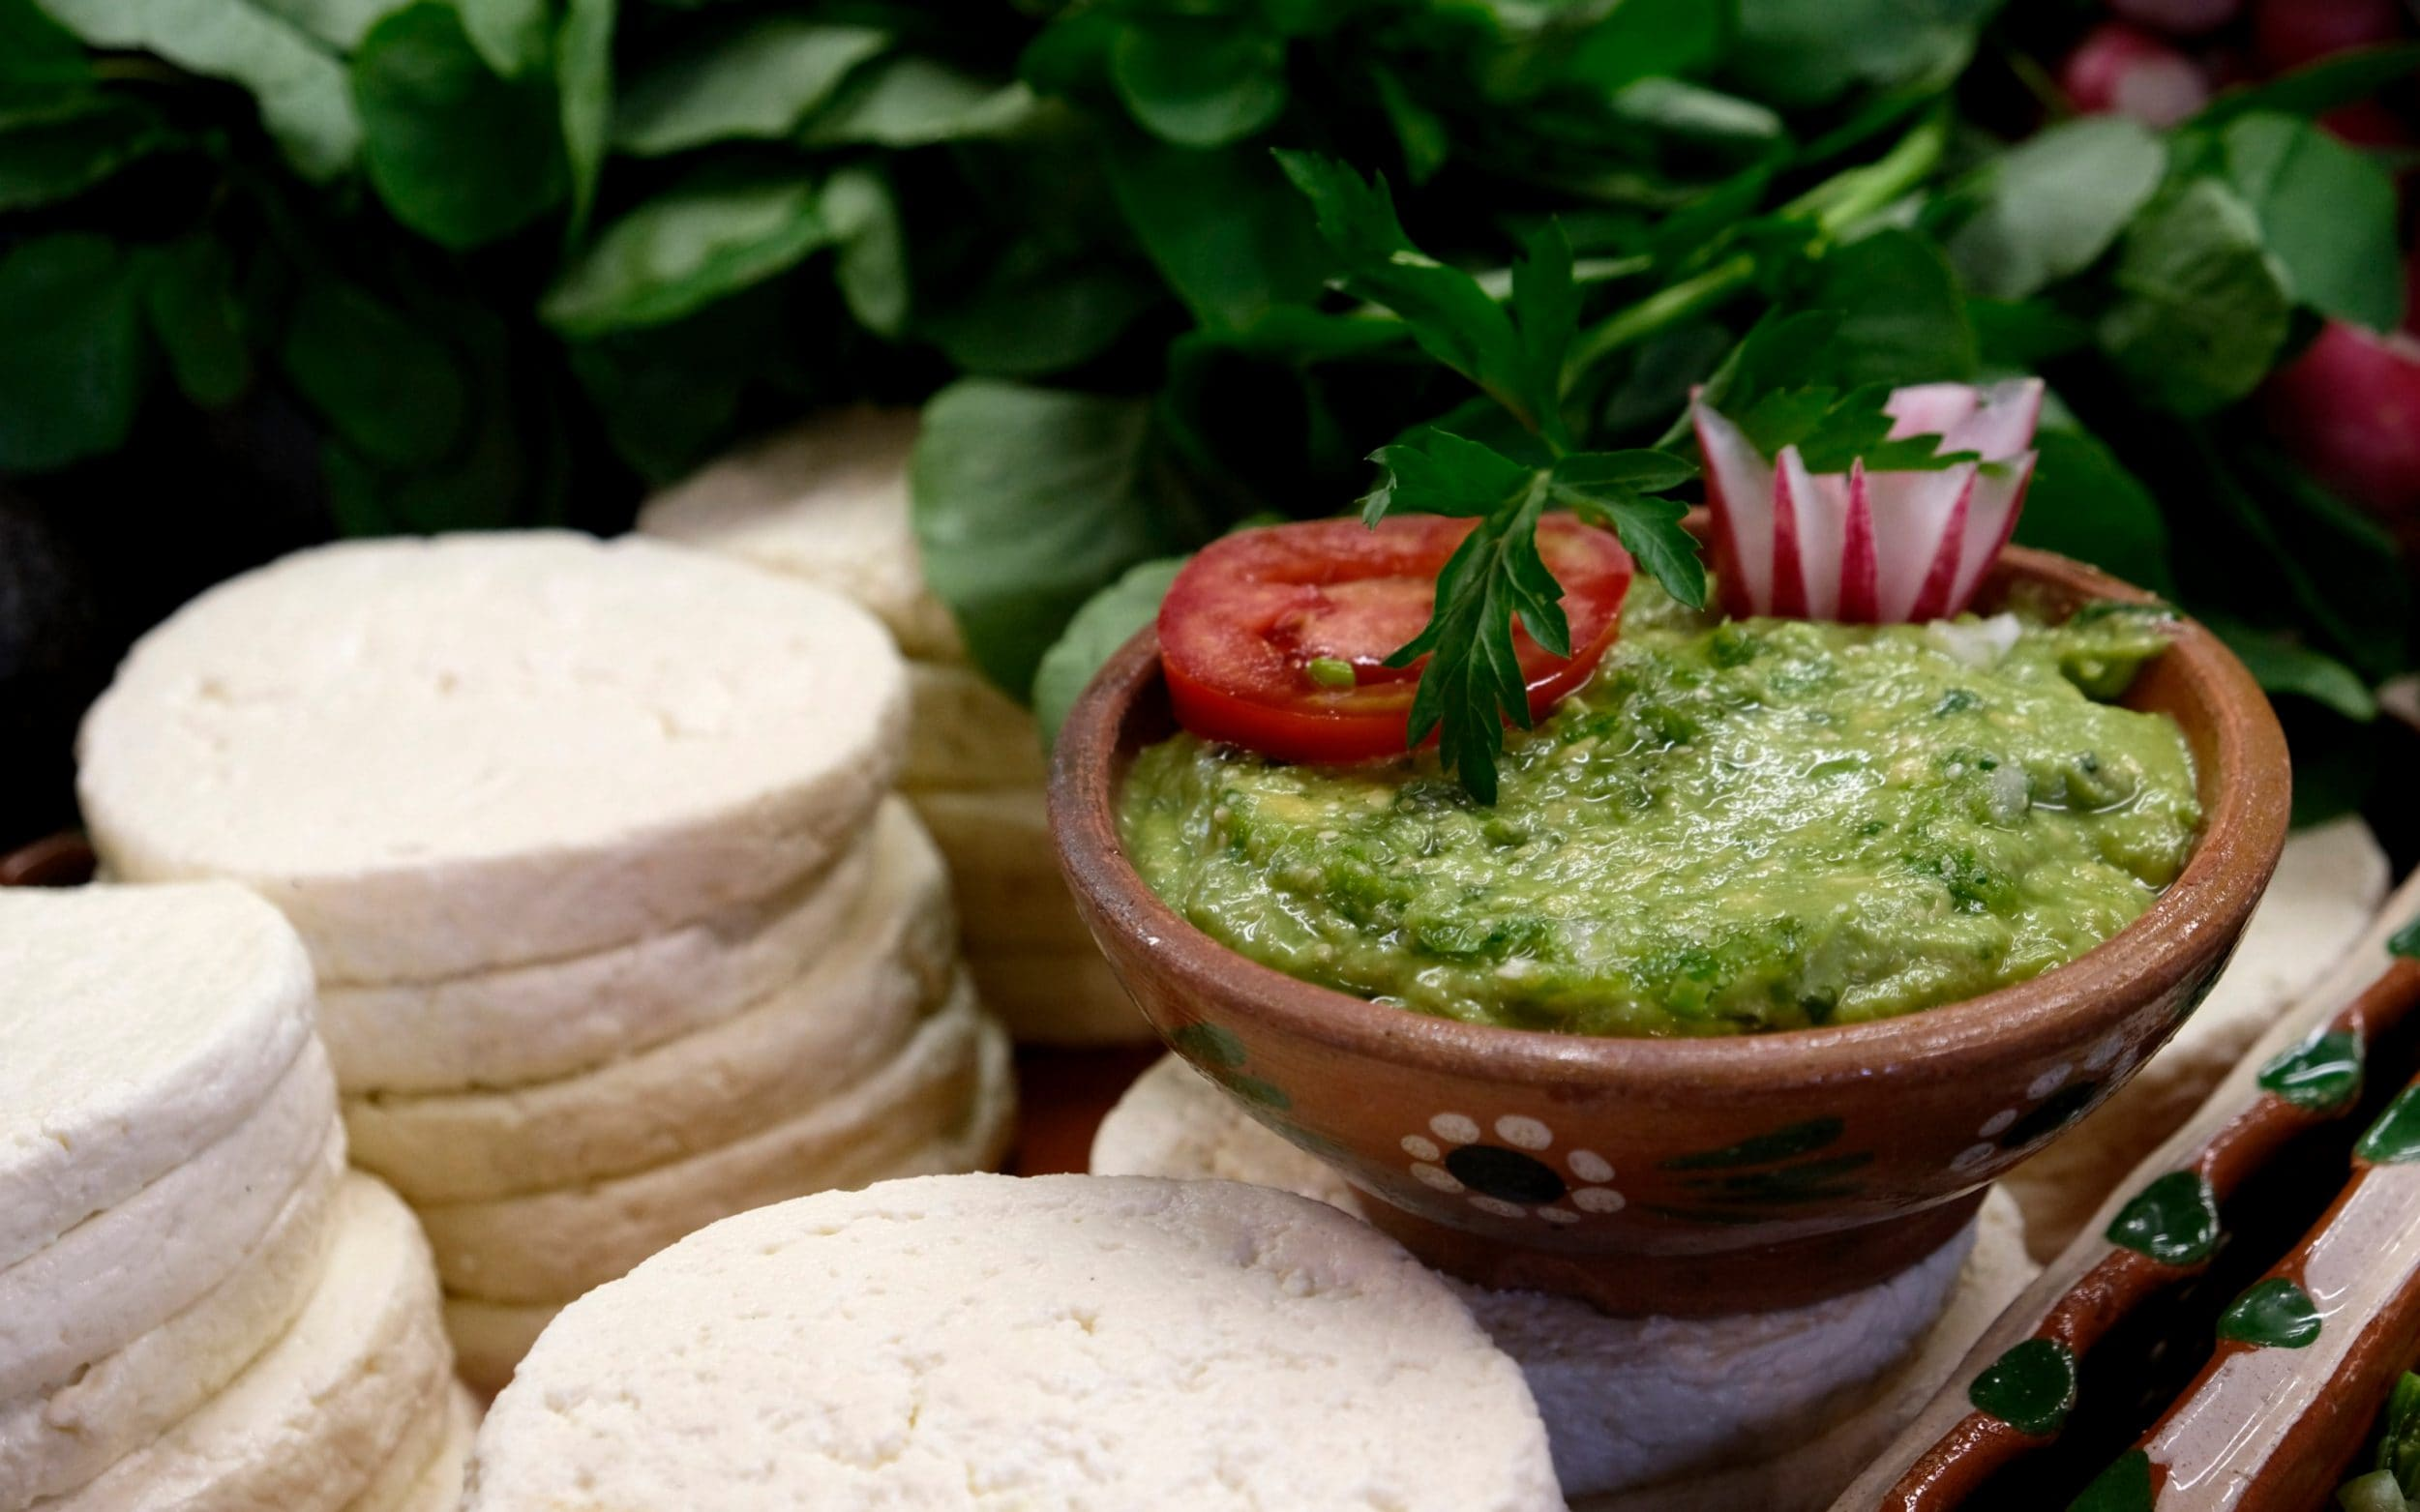 Mexico taco stalls serving fake guacamole due to US demand and cartel control of market